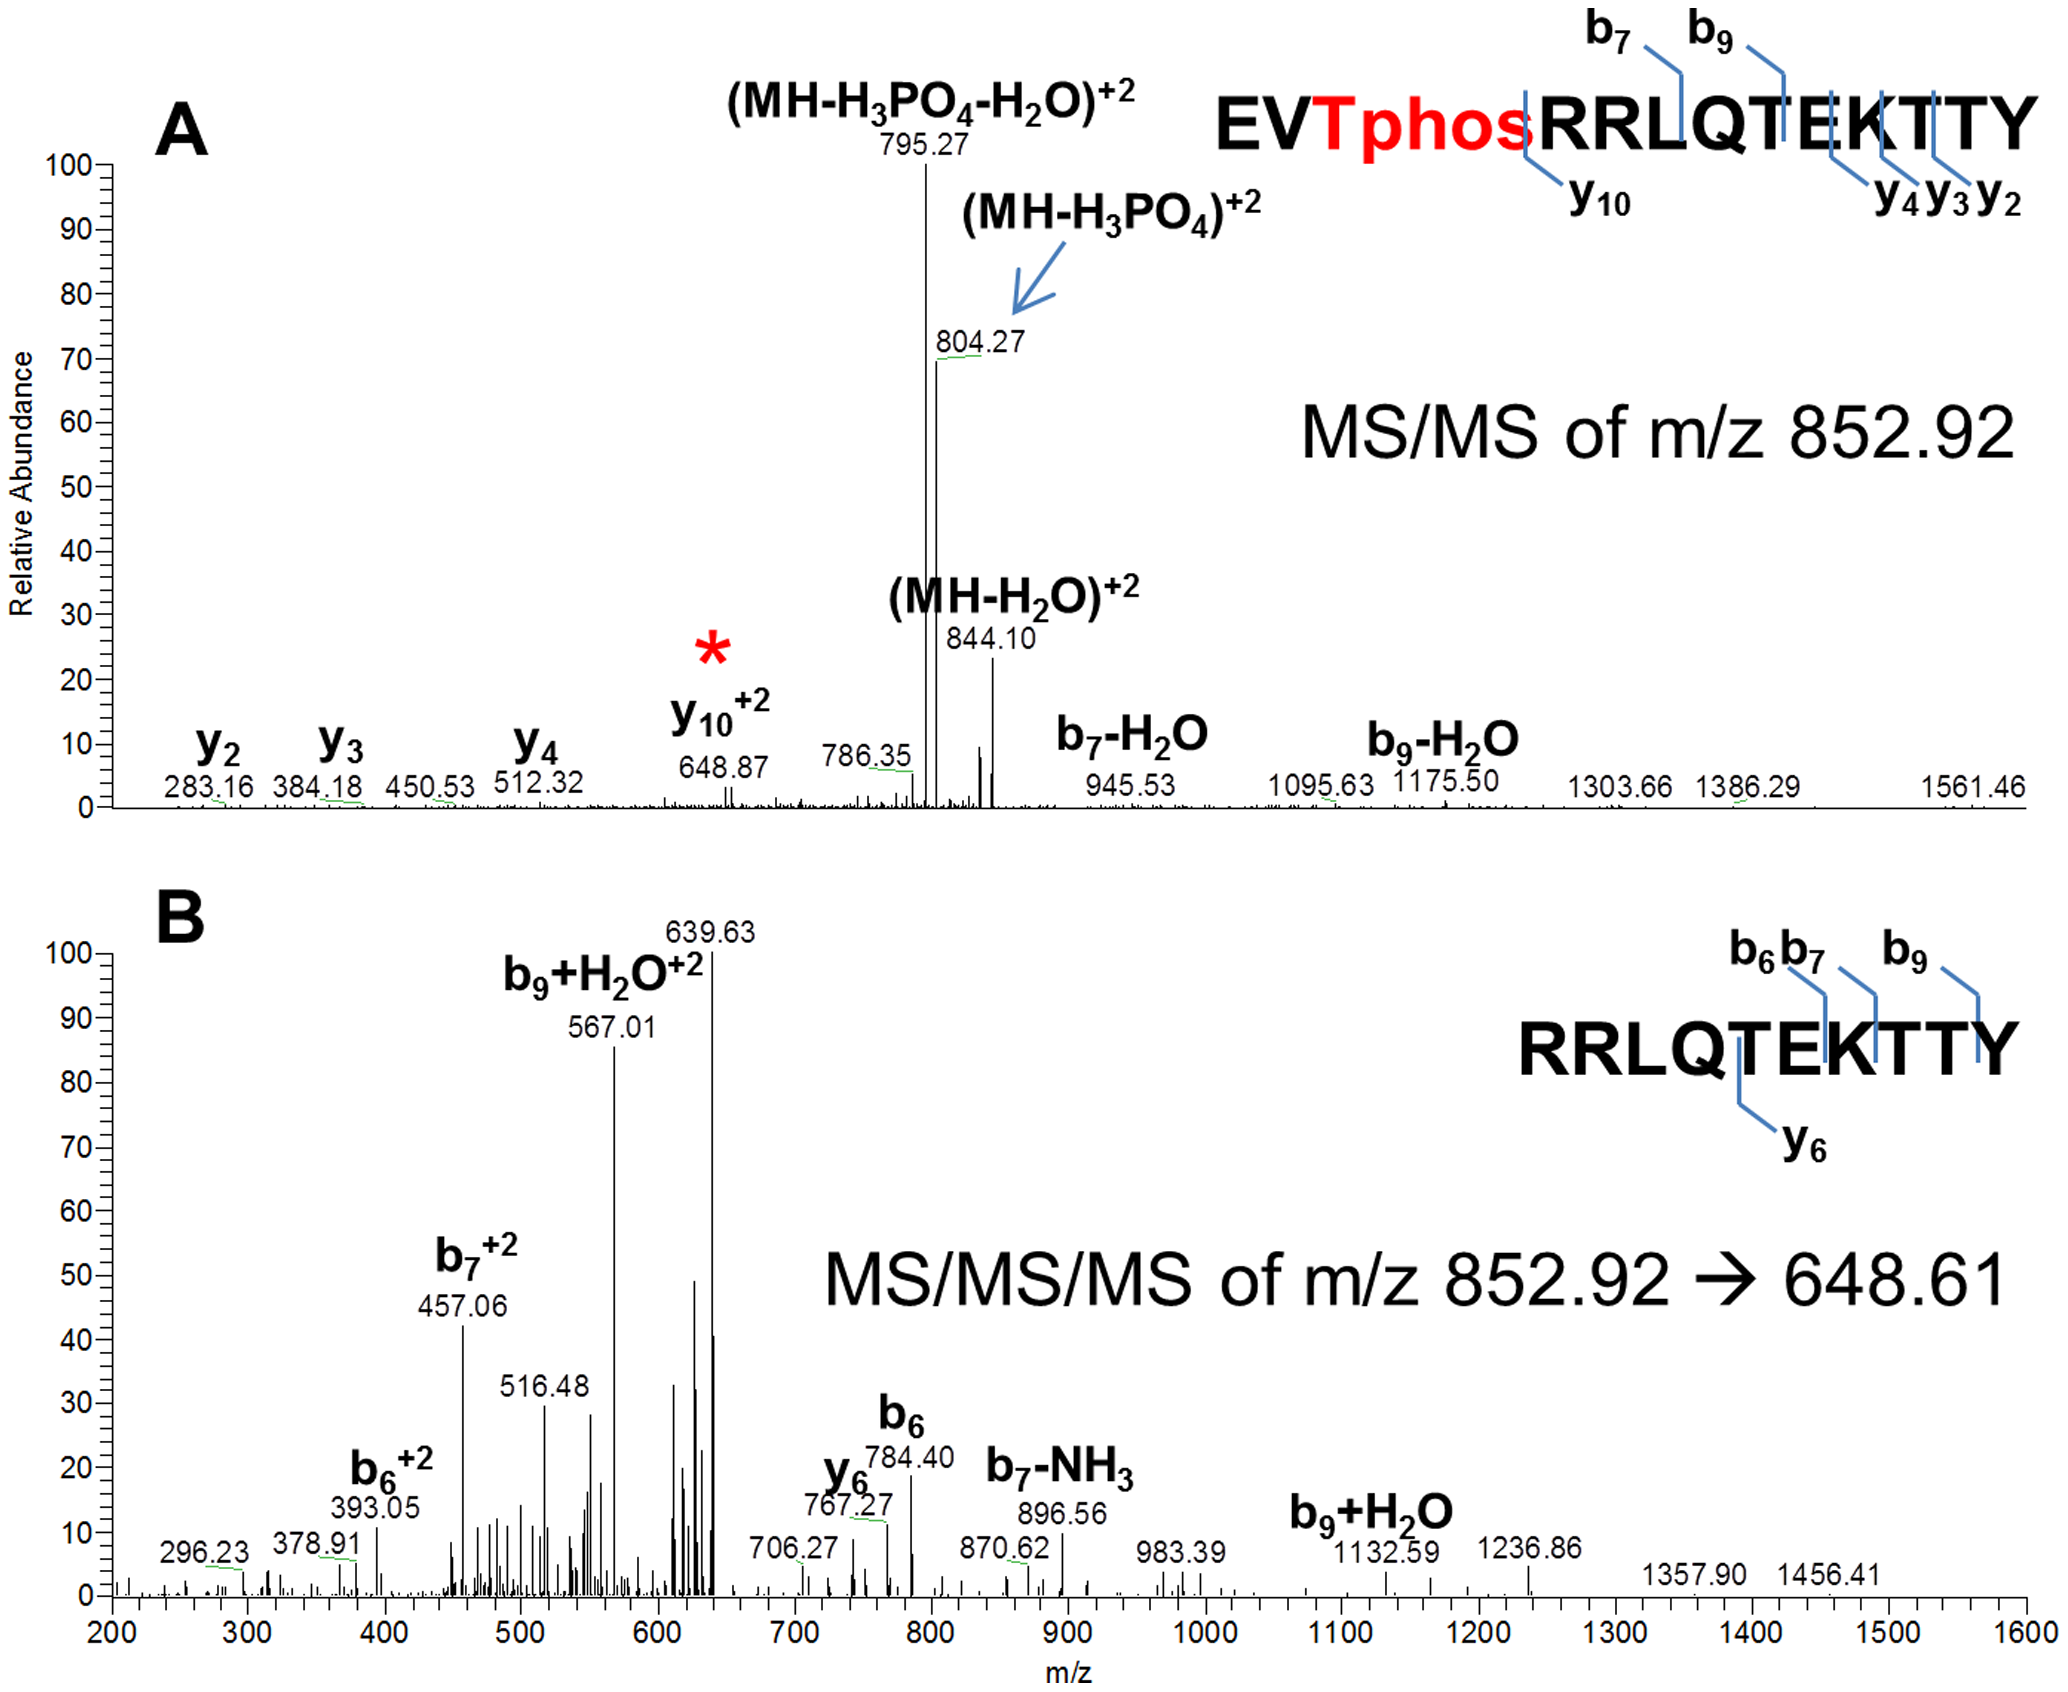 Mass spectra showing that CovR is phosphorylated on threonine 65.